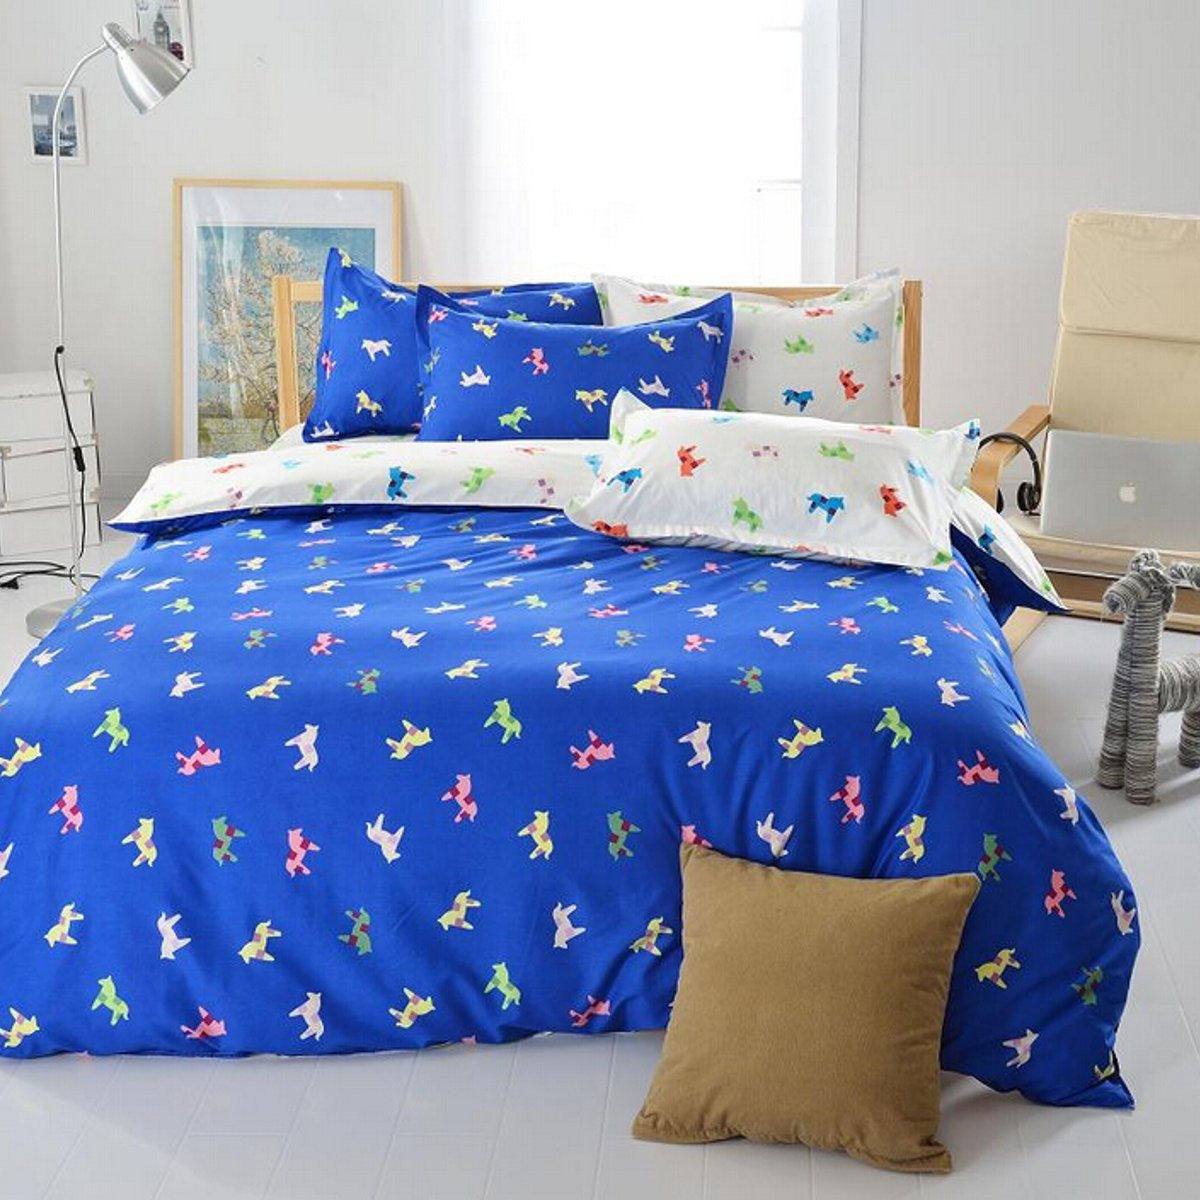 Bed sheet set with quilt - Polyester Bedding Blue Animal Horse Printed Bed Set Home Textile Quilt Duvet Cover Pillowcases Bed Sheet